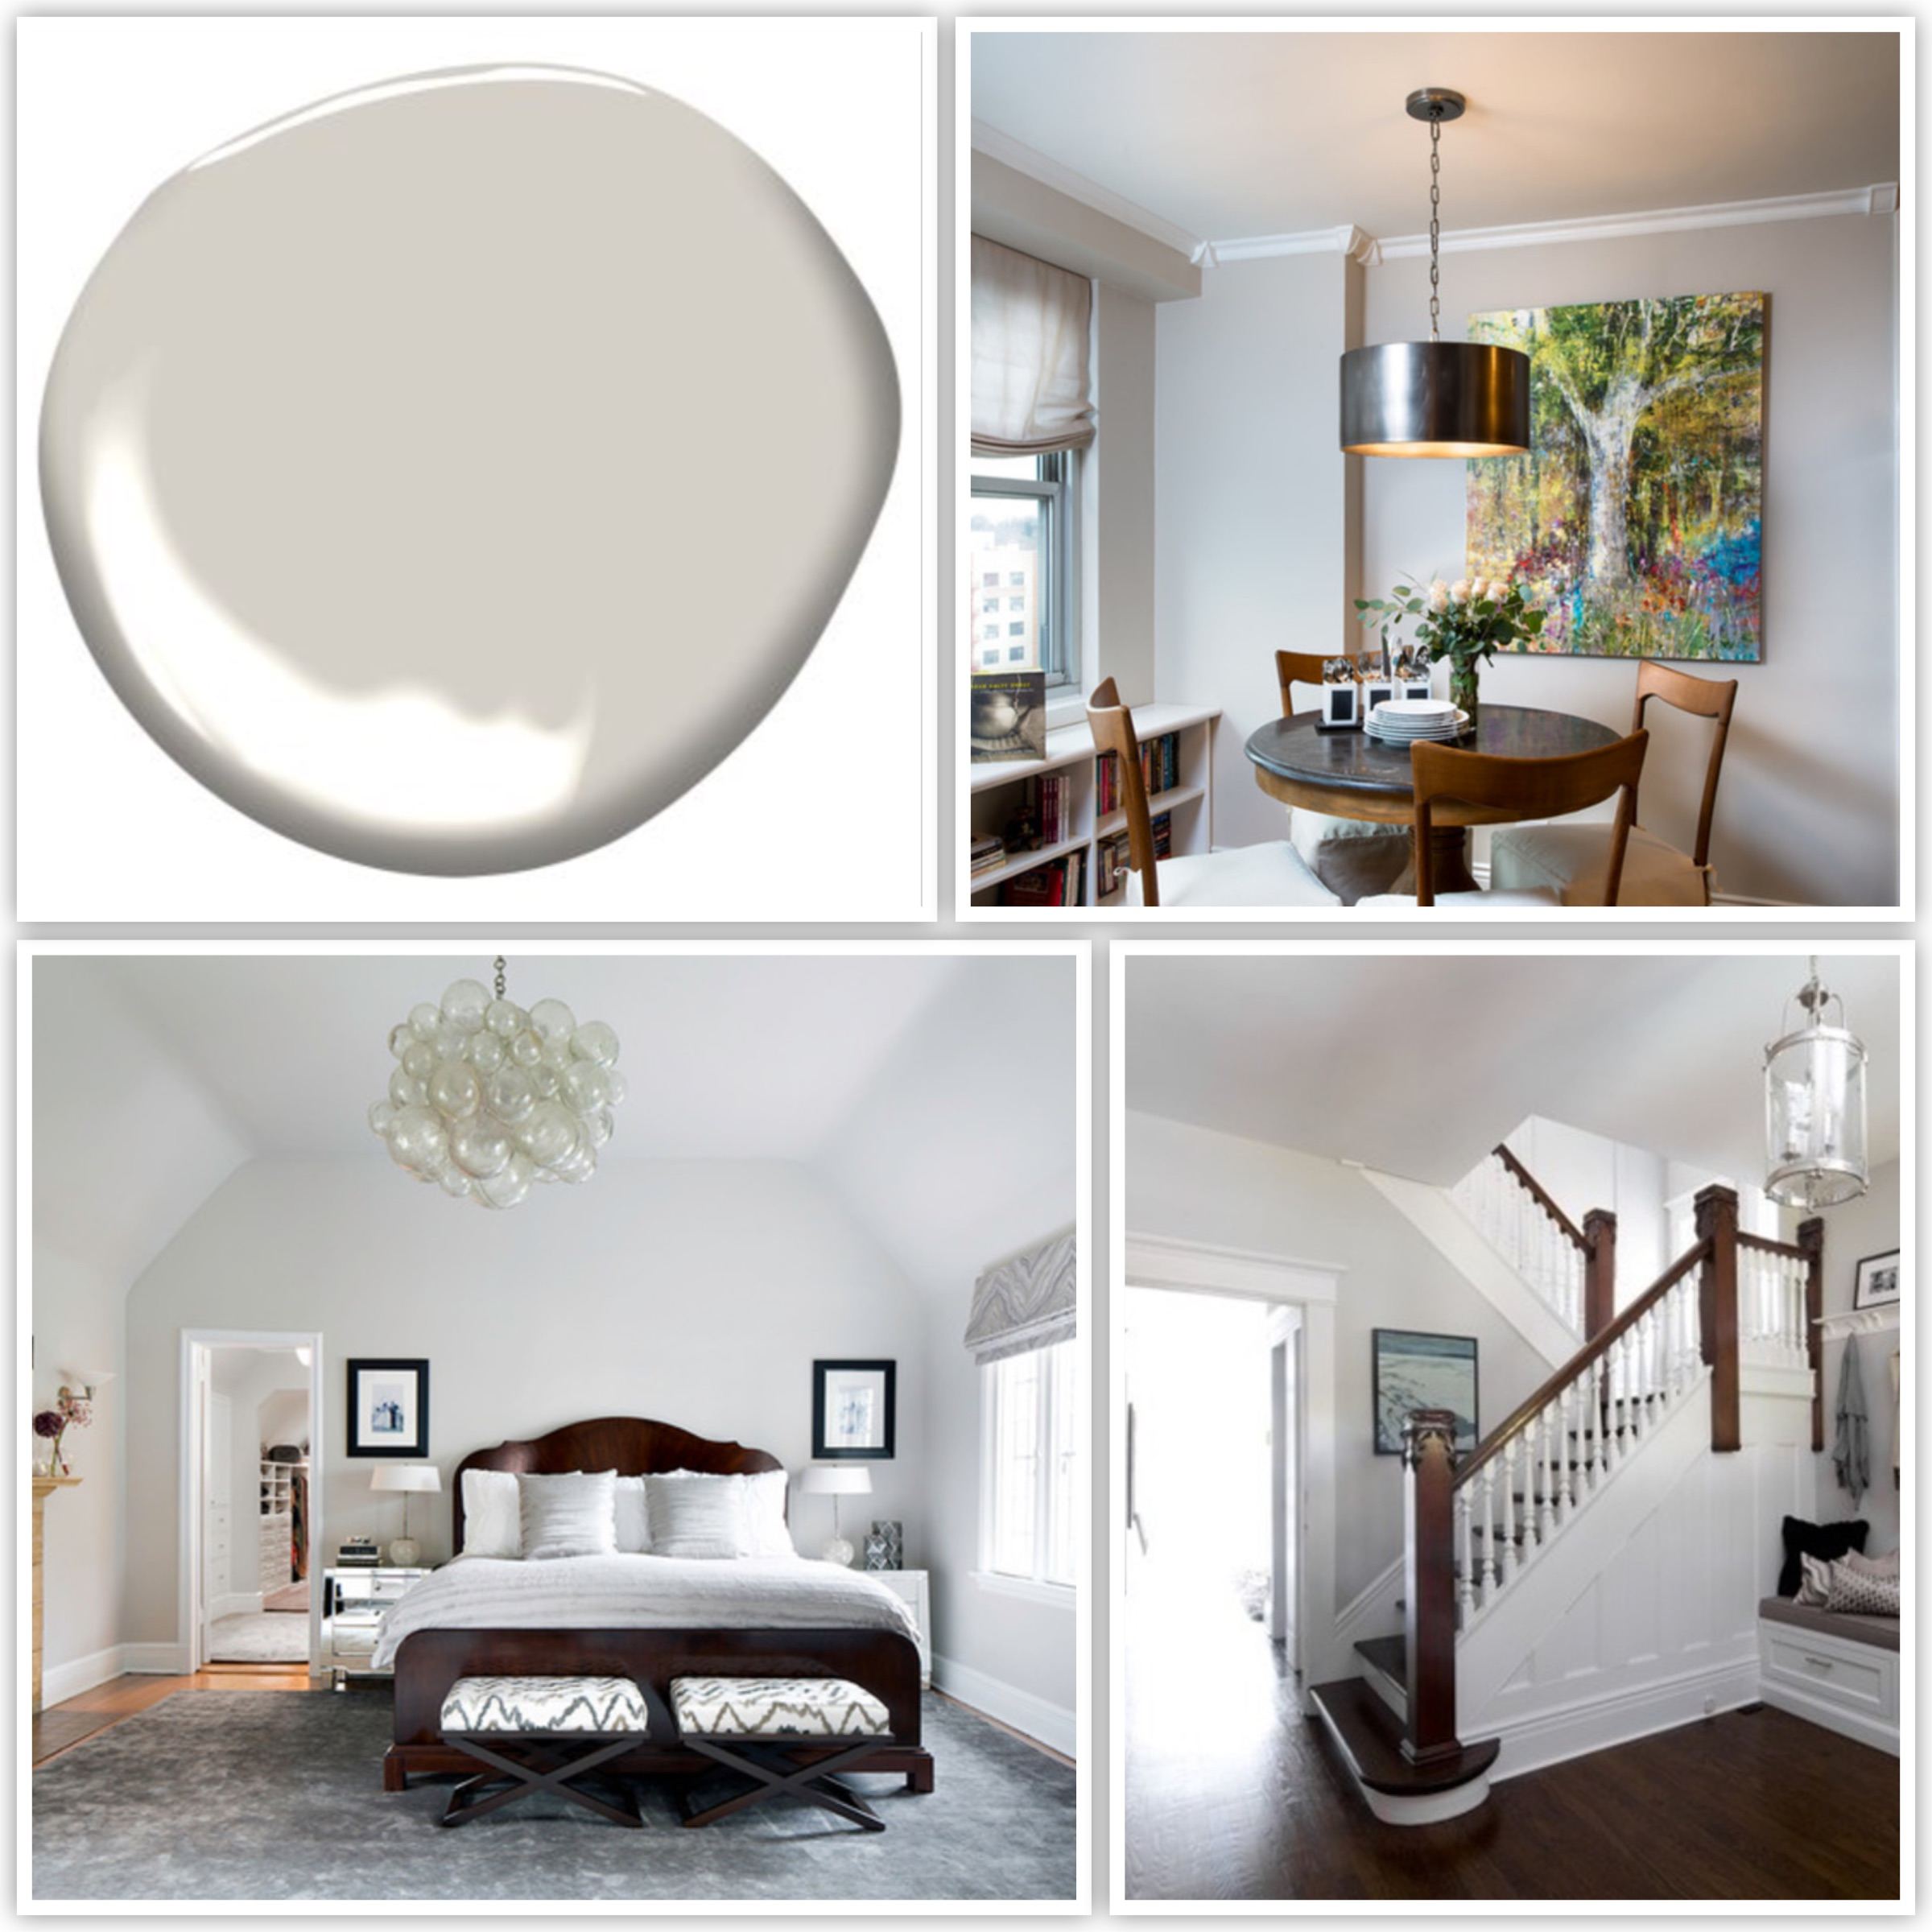 Benjamin Moore: Choosing The Right Paint Colour For Selling Your Home